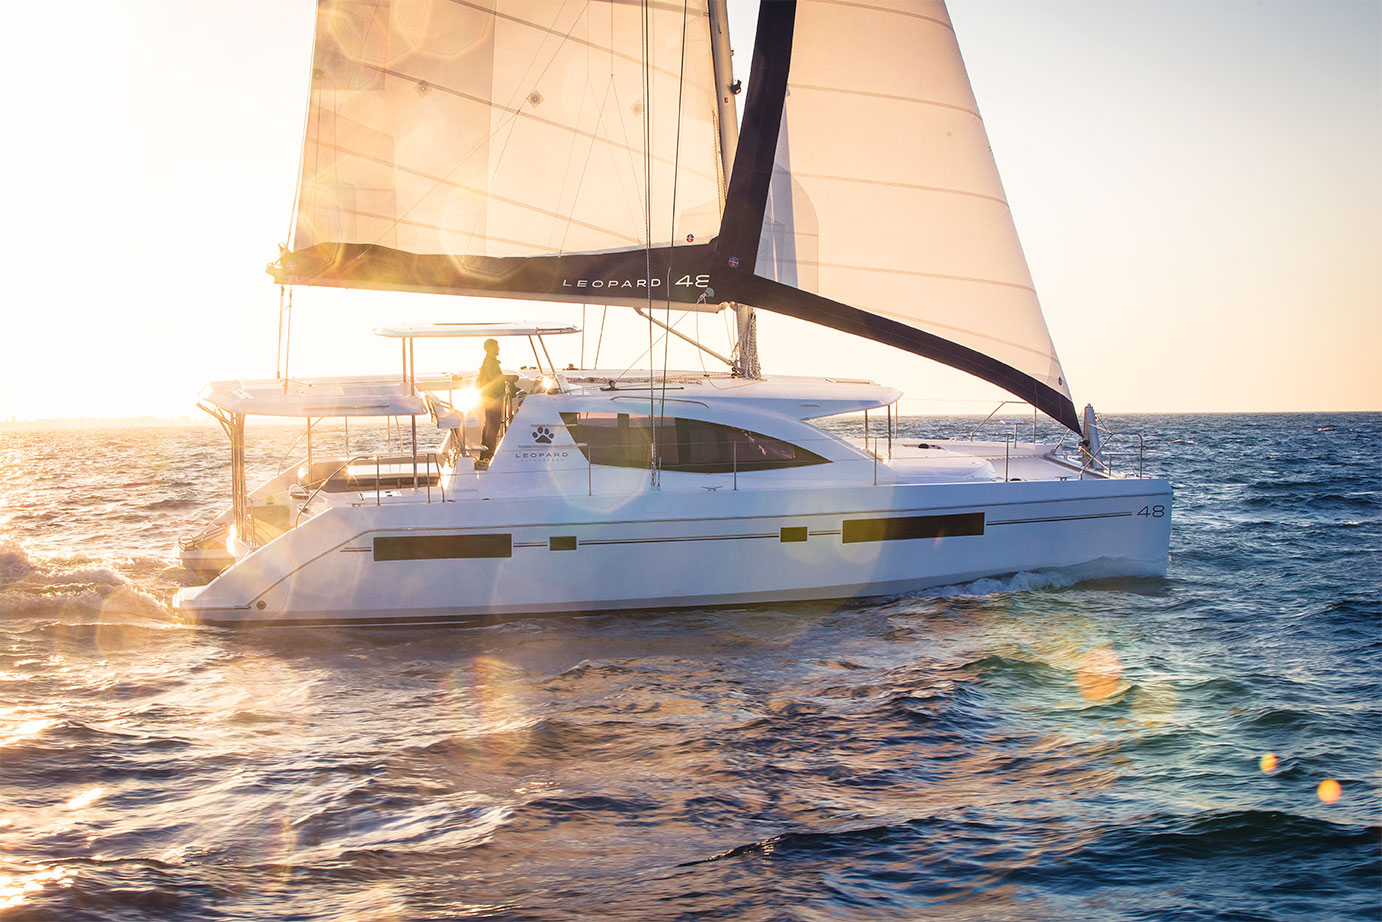 Leopard 48 Catamaran Sailing Photography